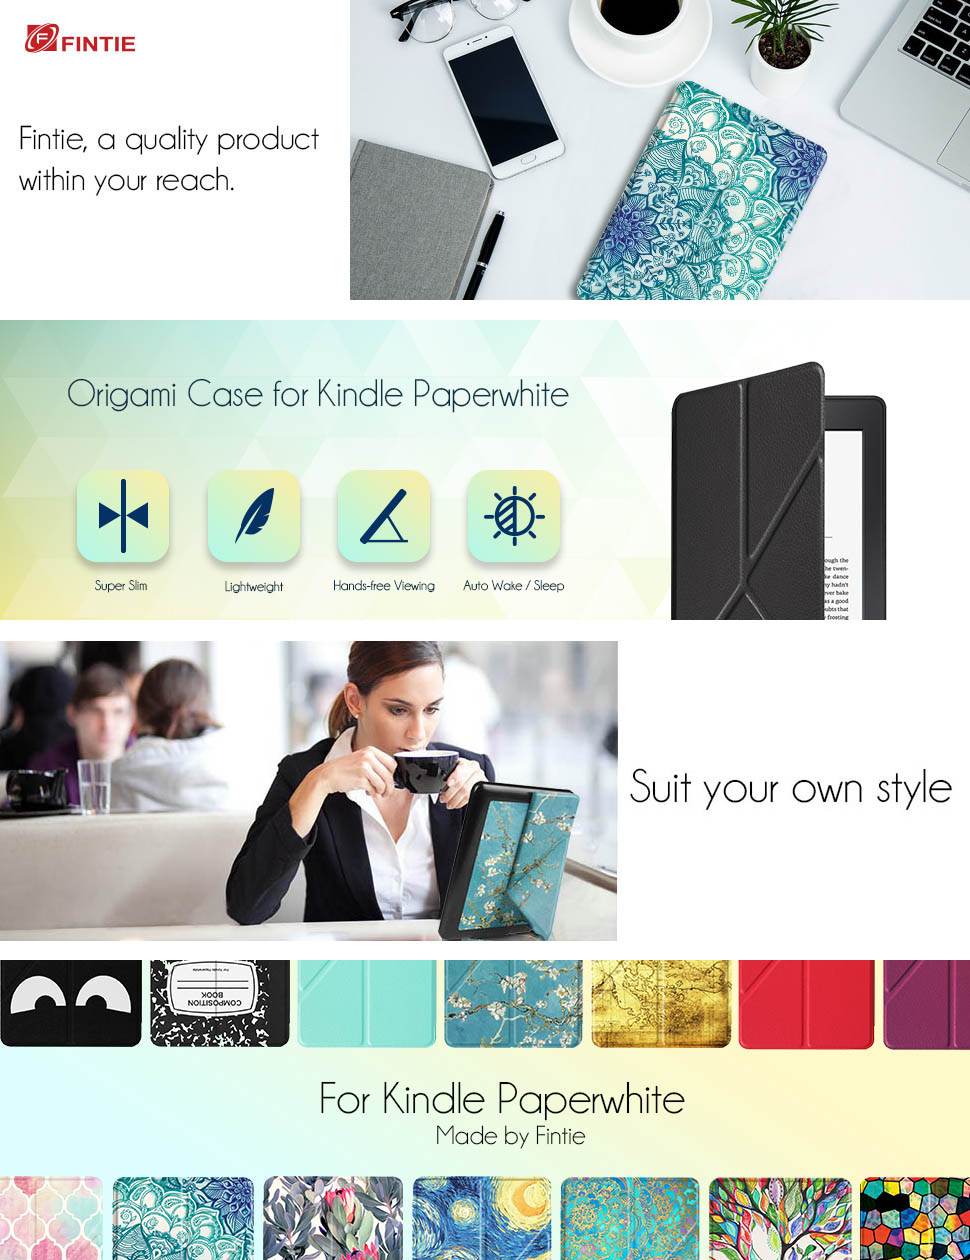 Blossom The Thinnest and Lightest PU Leather Cover for All-New  Kindle Paperwhite Fintie Origami Case for Kindle Paperwhite Fits All Versions: 2012, 2013, 2015 and 2016 New 300 PPI